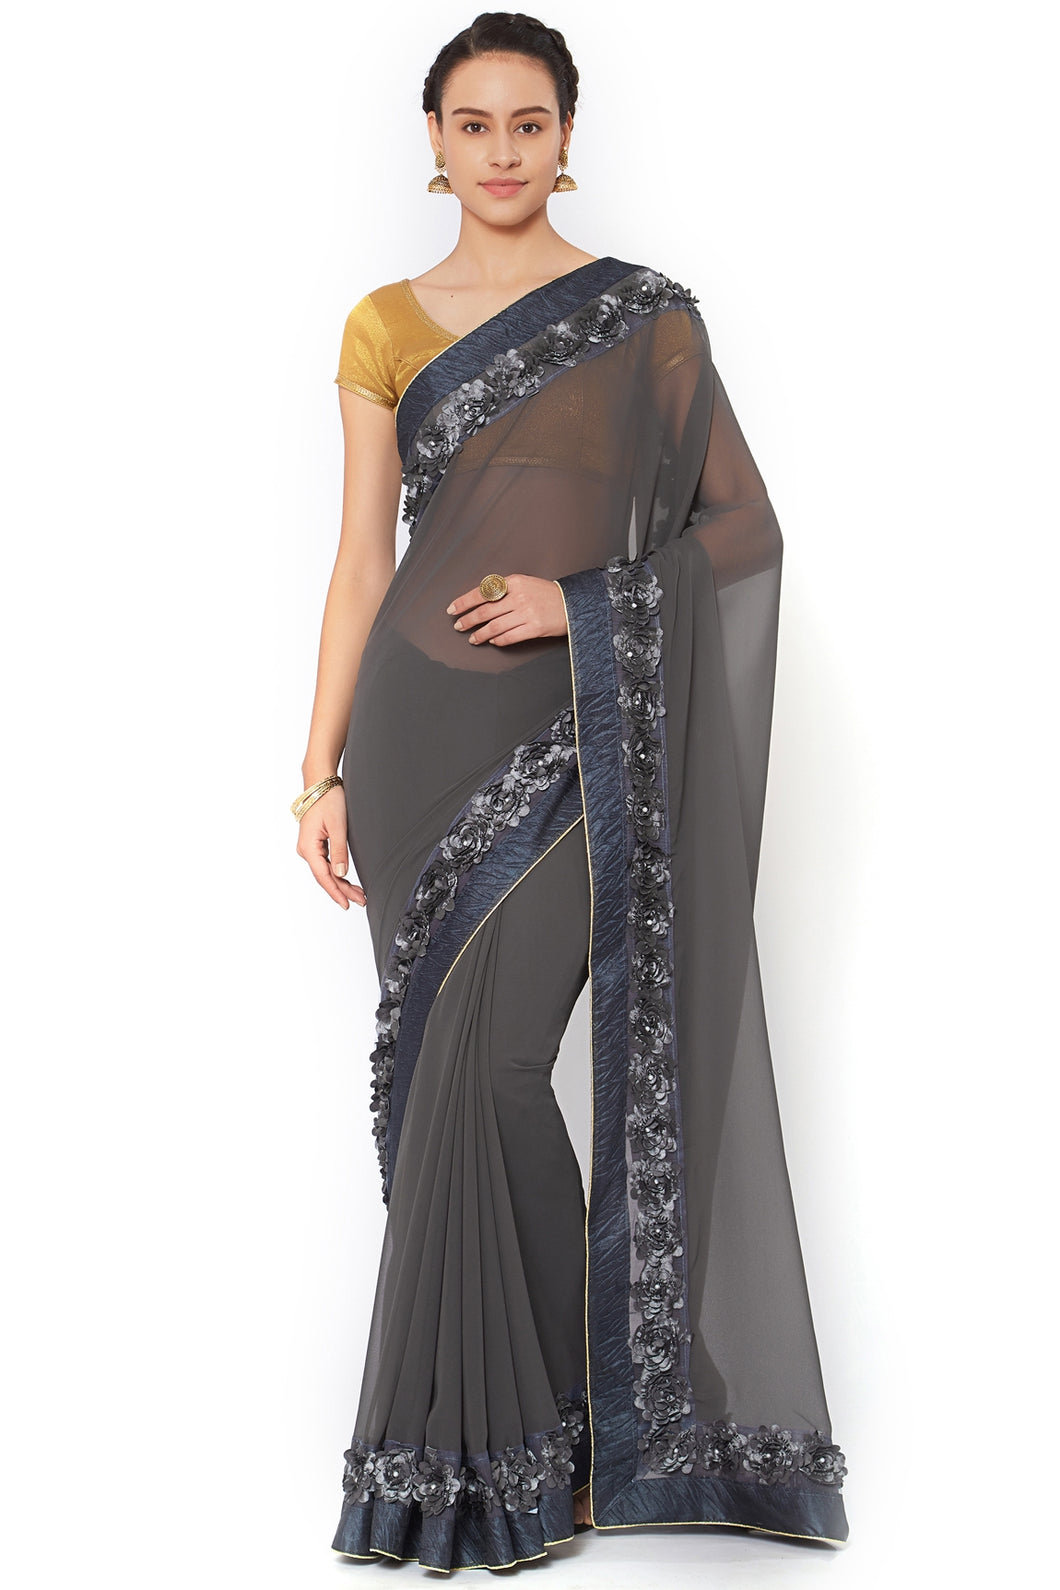 Bhelpuri Grey Georgette Lace Border Party Wear Saree with Blouse Piece